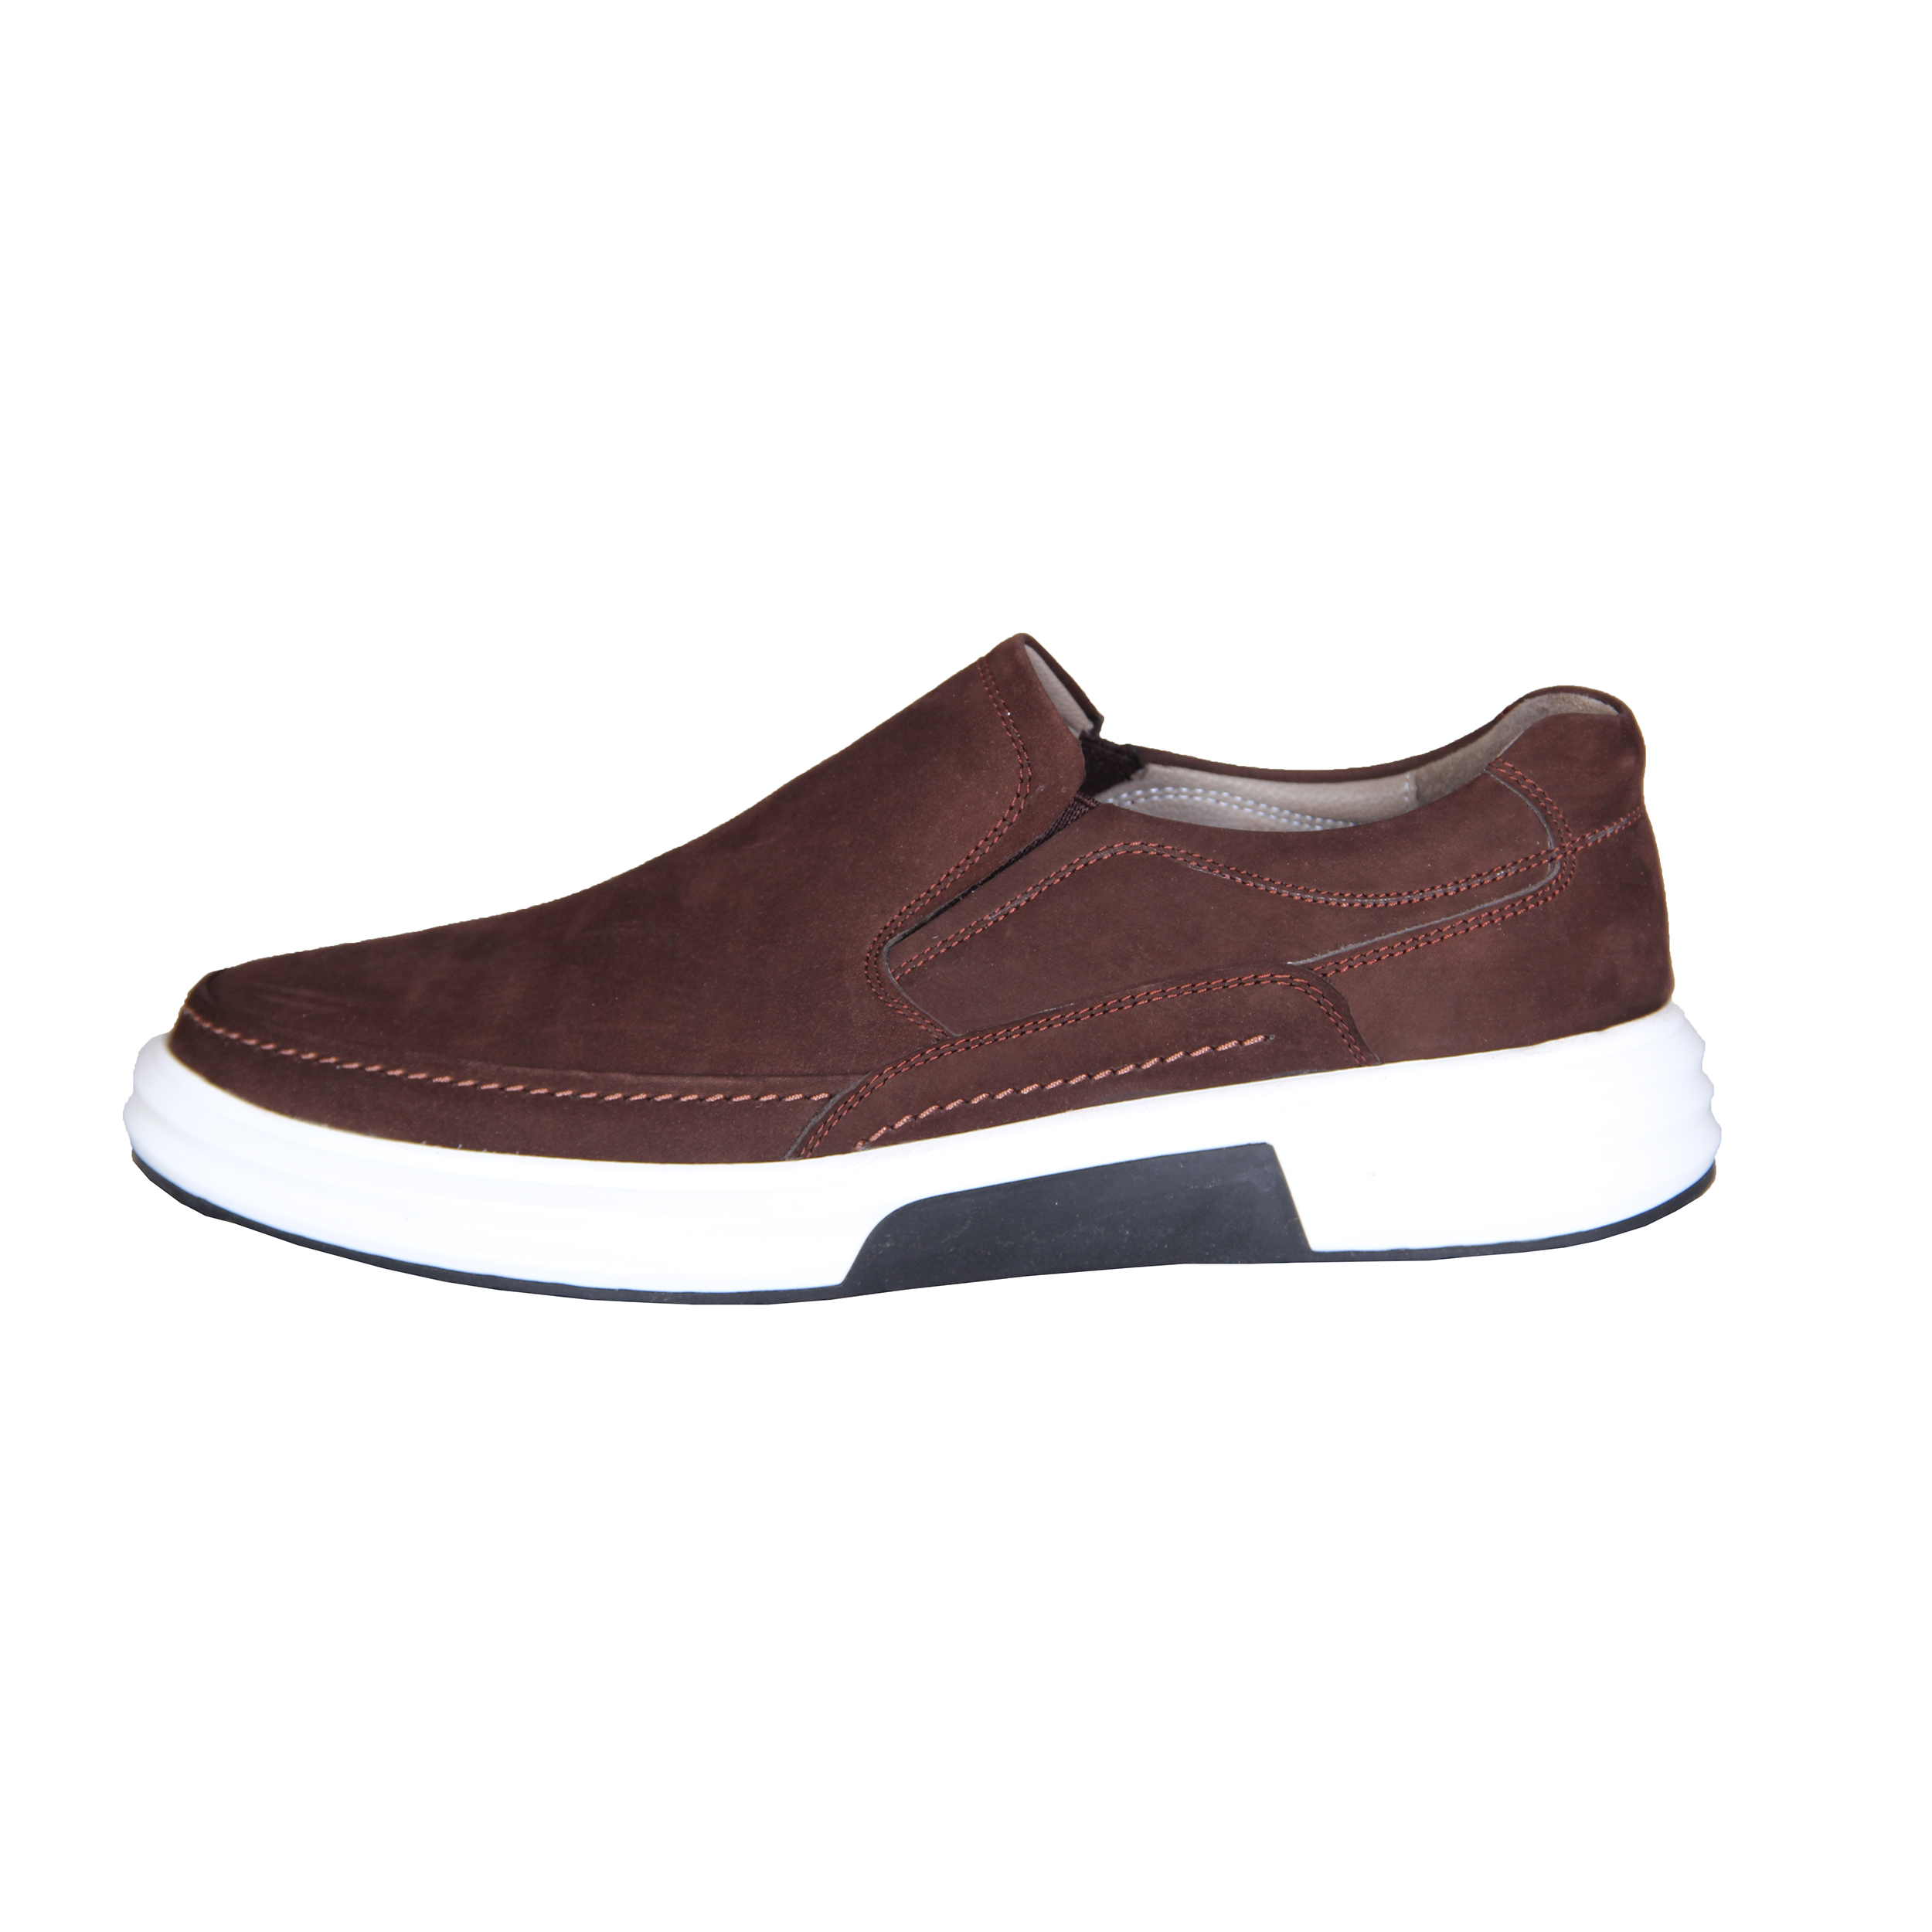 SHAHRECHARM leather men's casual shoes , F6046-3 Model